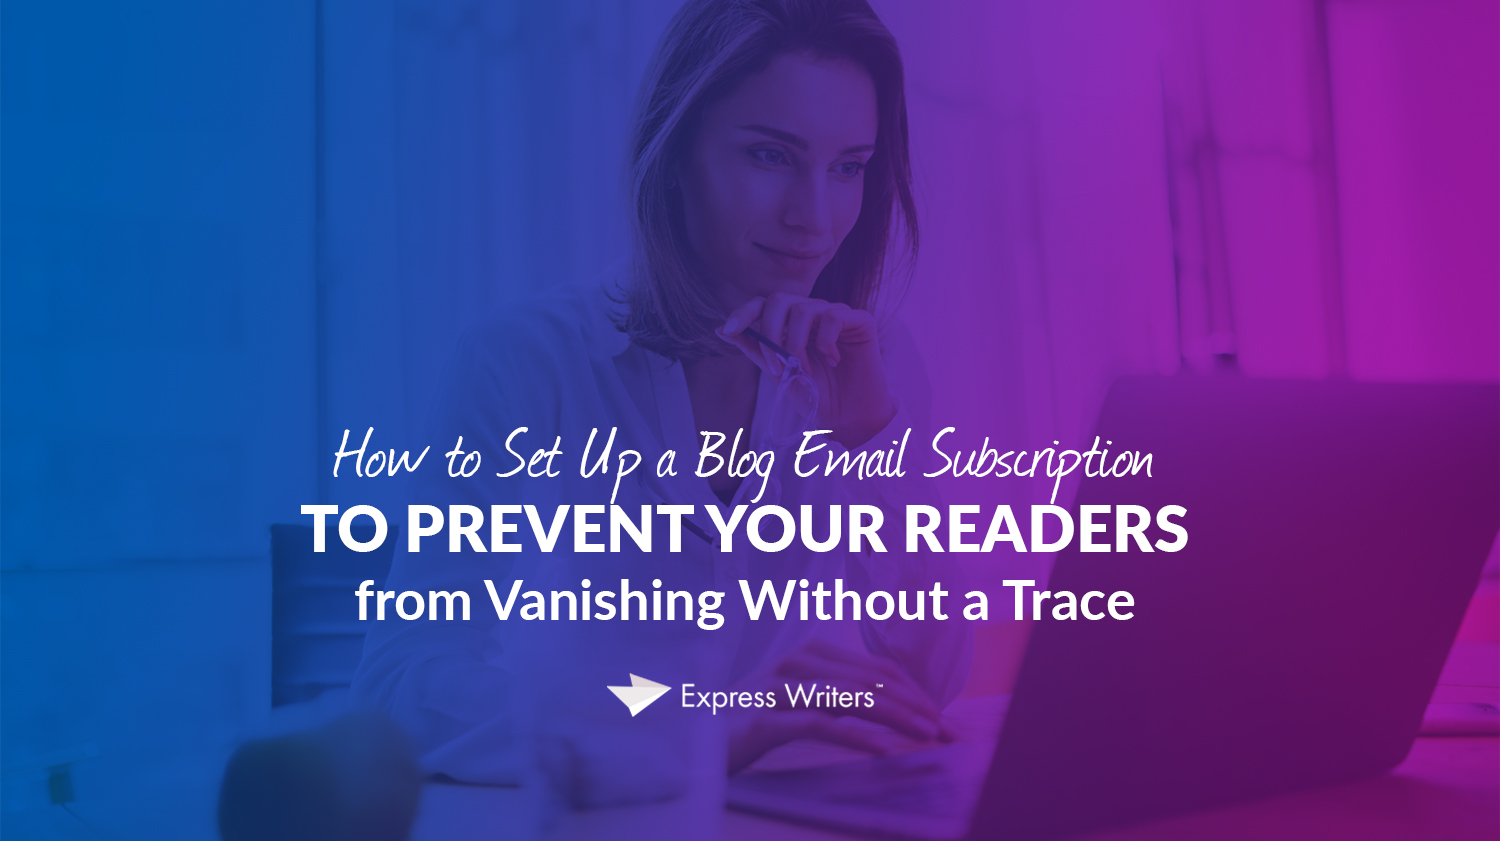 blog email subscription guide inset